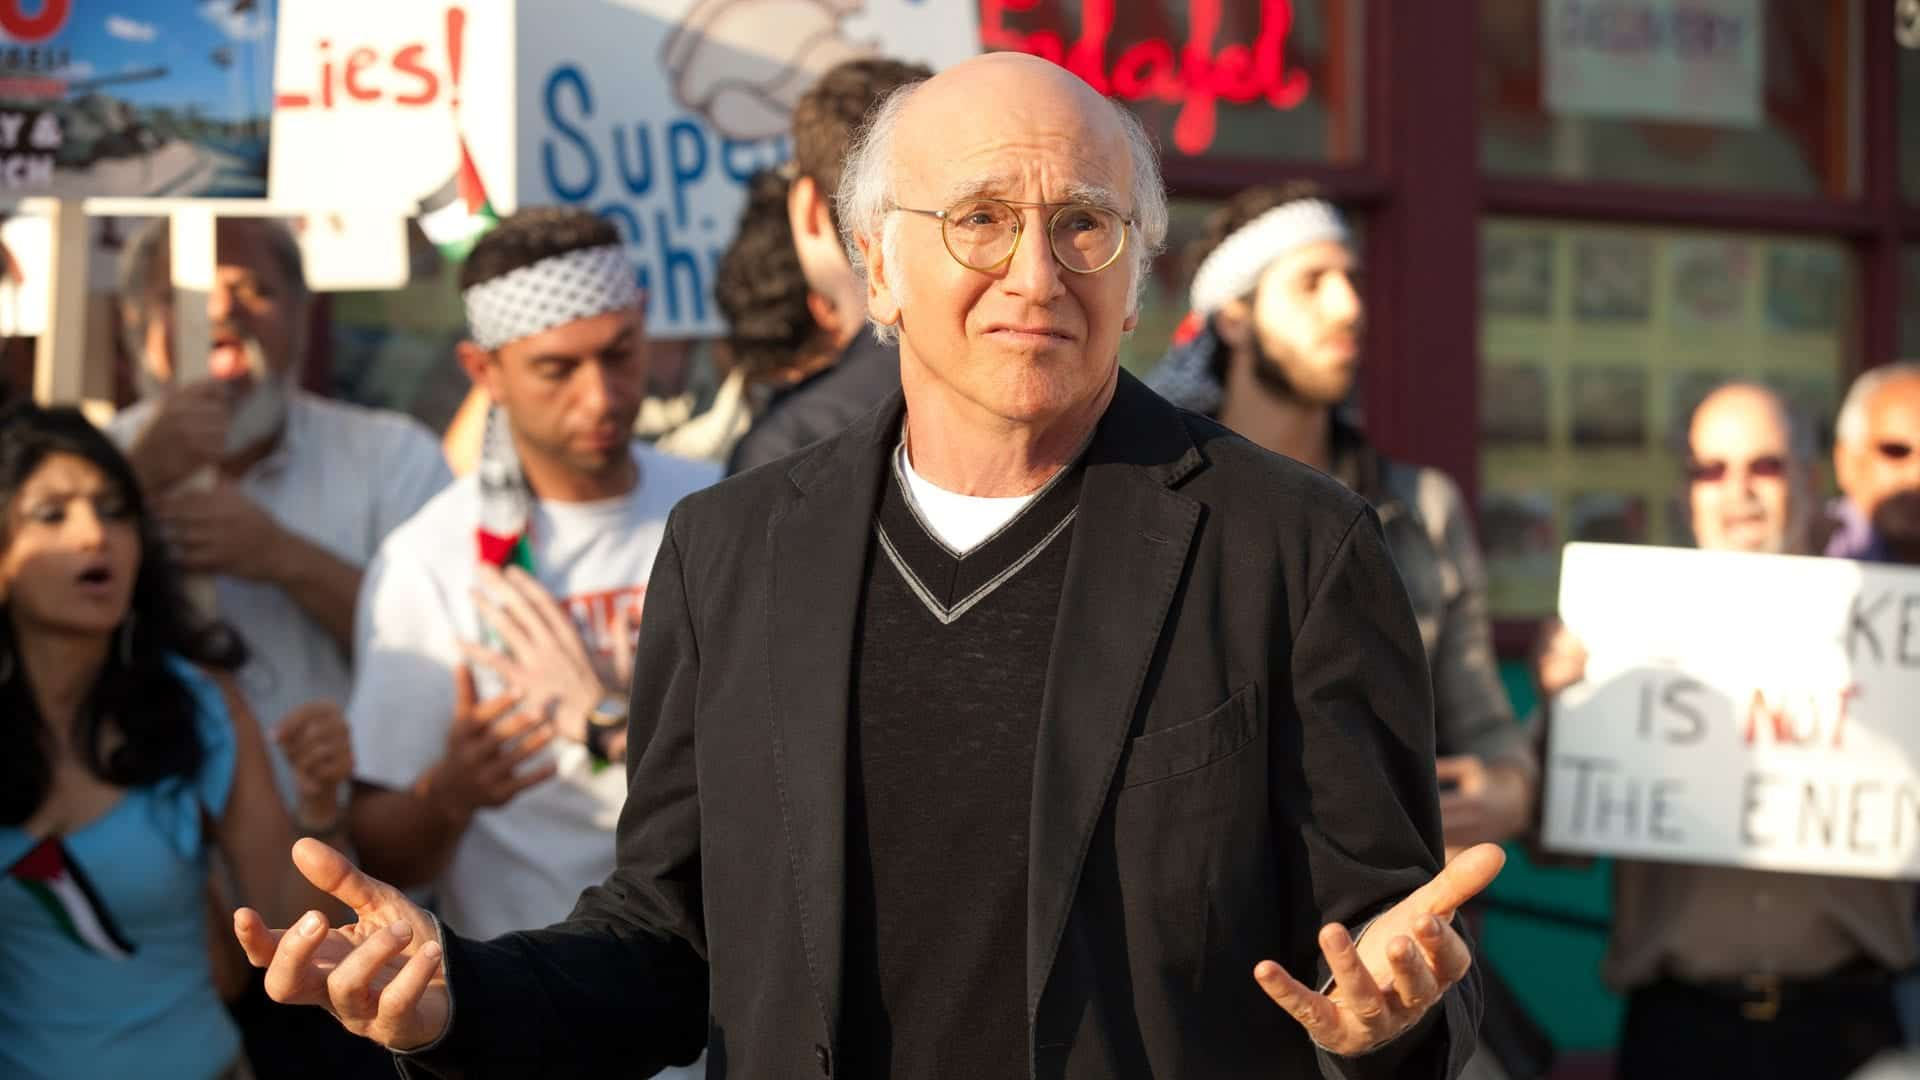 A six-year hiatus is over. Larry David's 'Curb Your Enthusiasm' season 9 finally has an airdate: HBO's beloved comedy will return on October 1st.